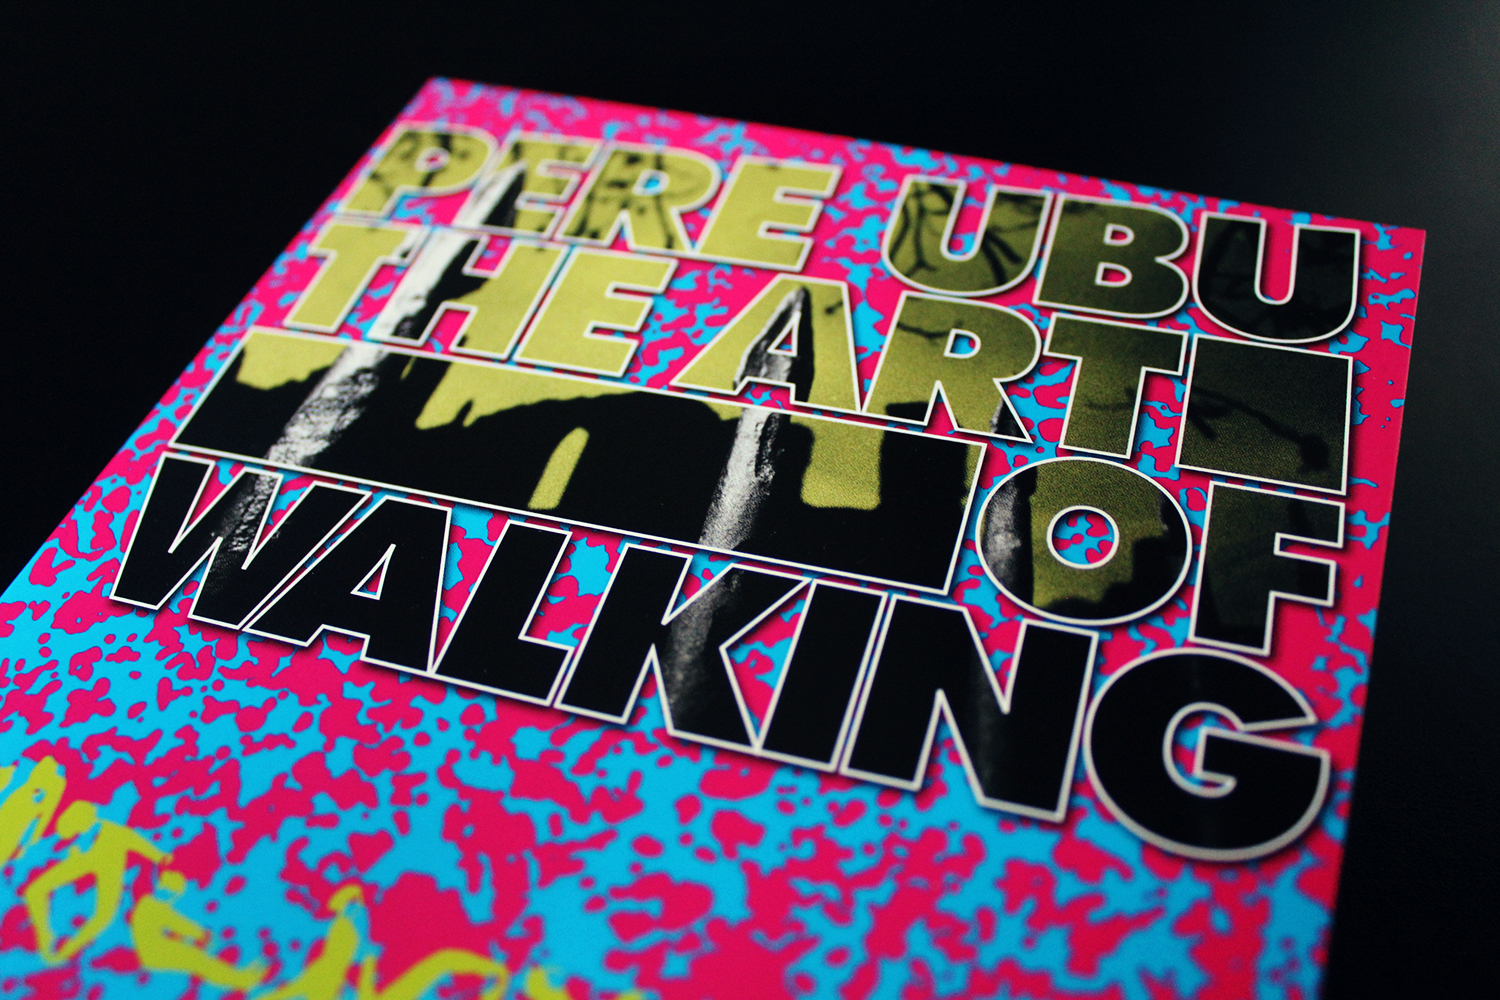 Pere Ubu The Art Of Walking Cd Fire Records